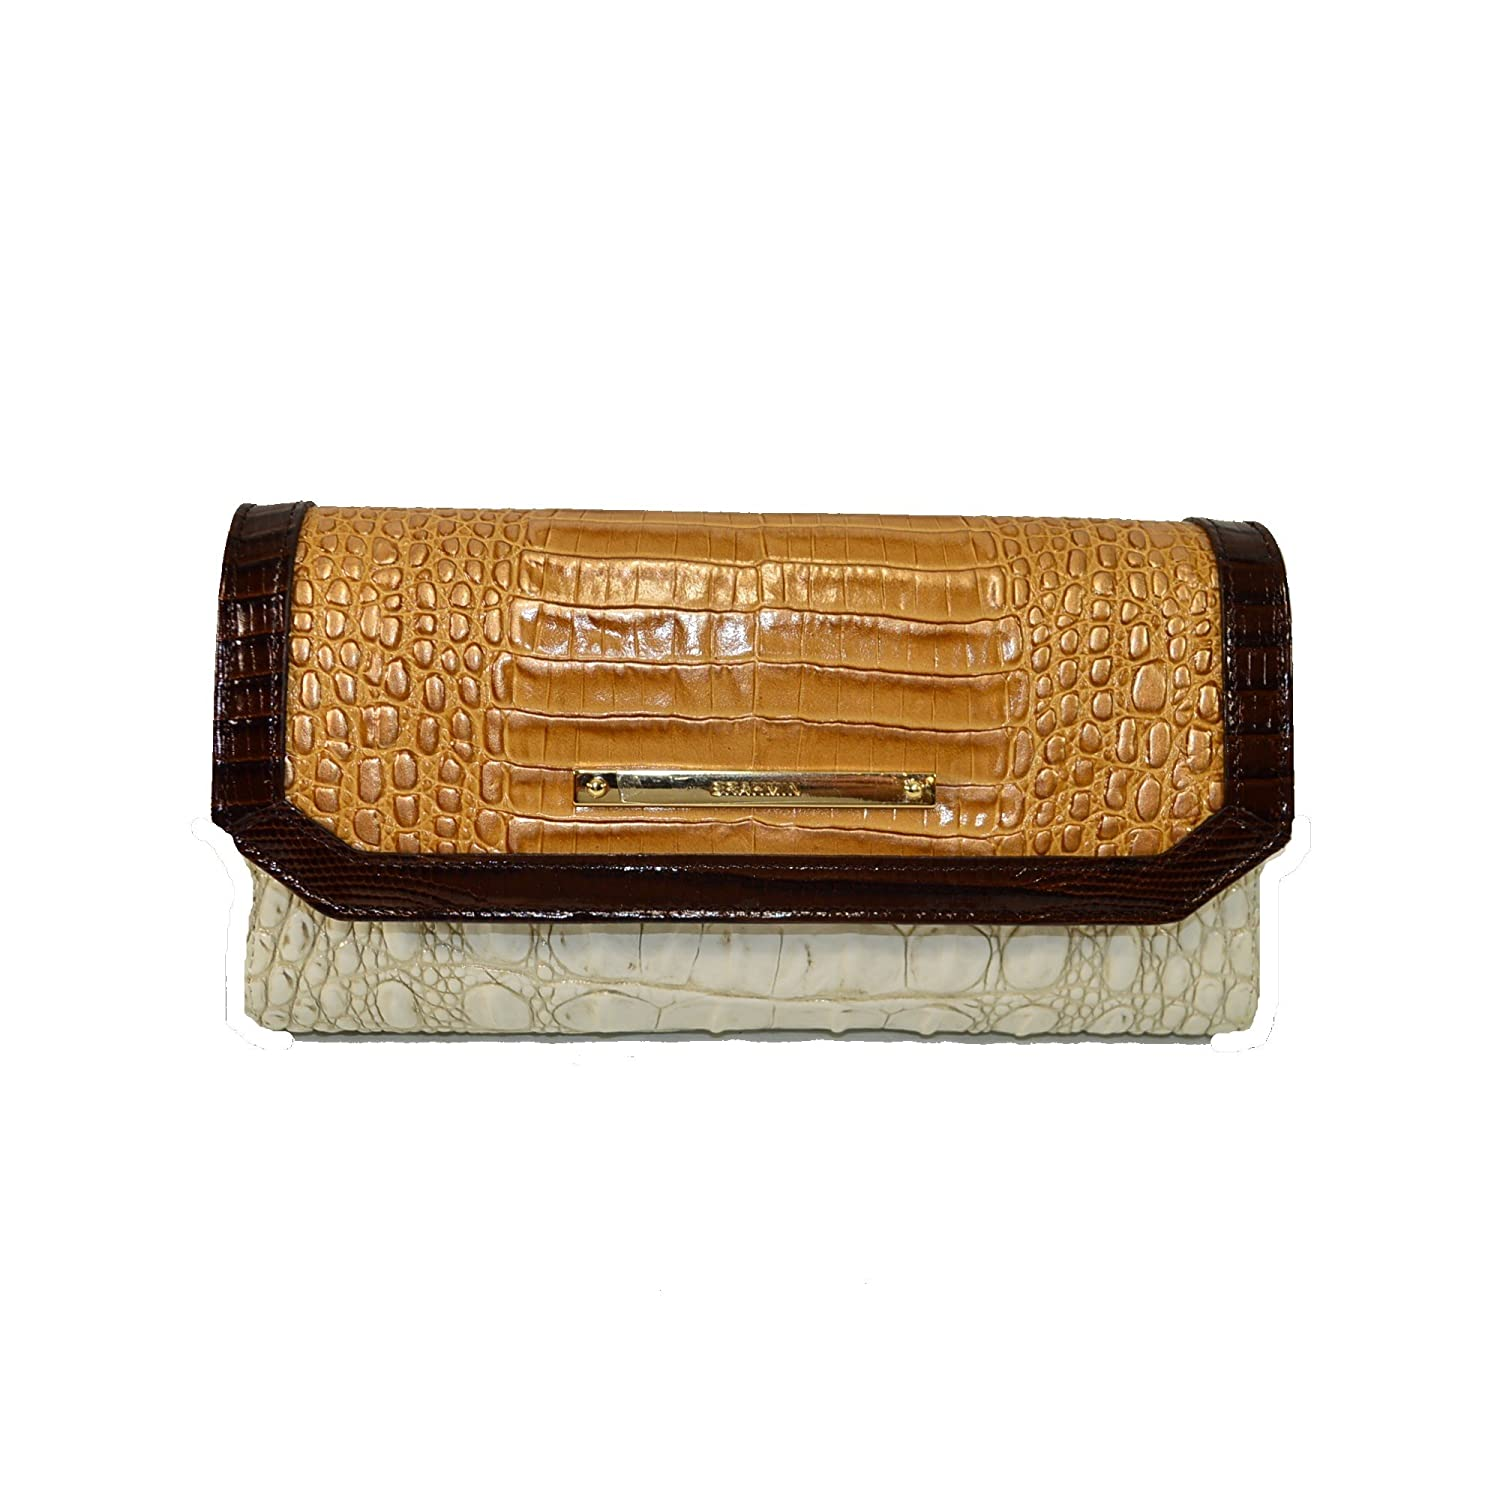 Brahmin Soft Checkbook wallet Coconut Kedima G44 1185